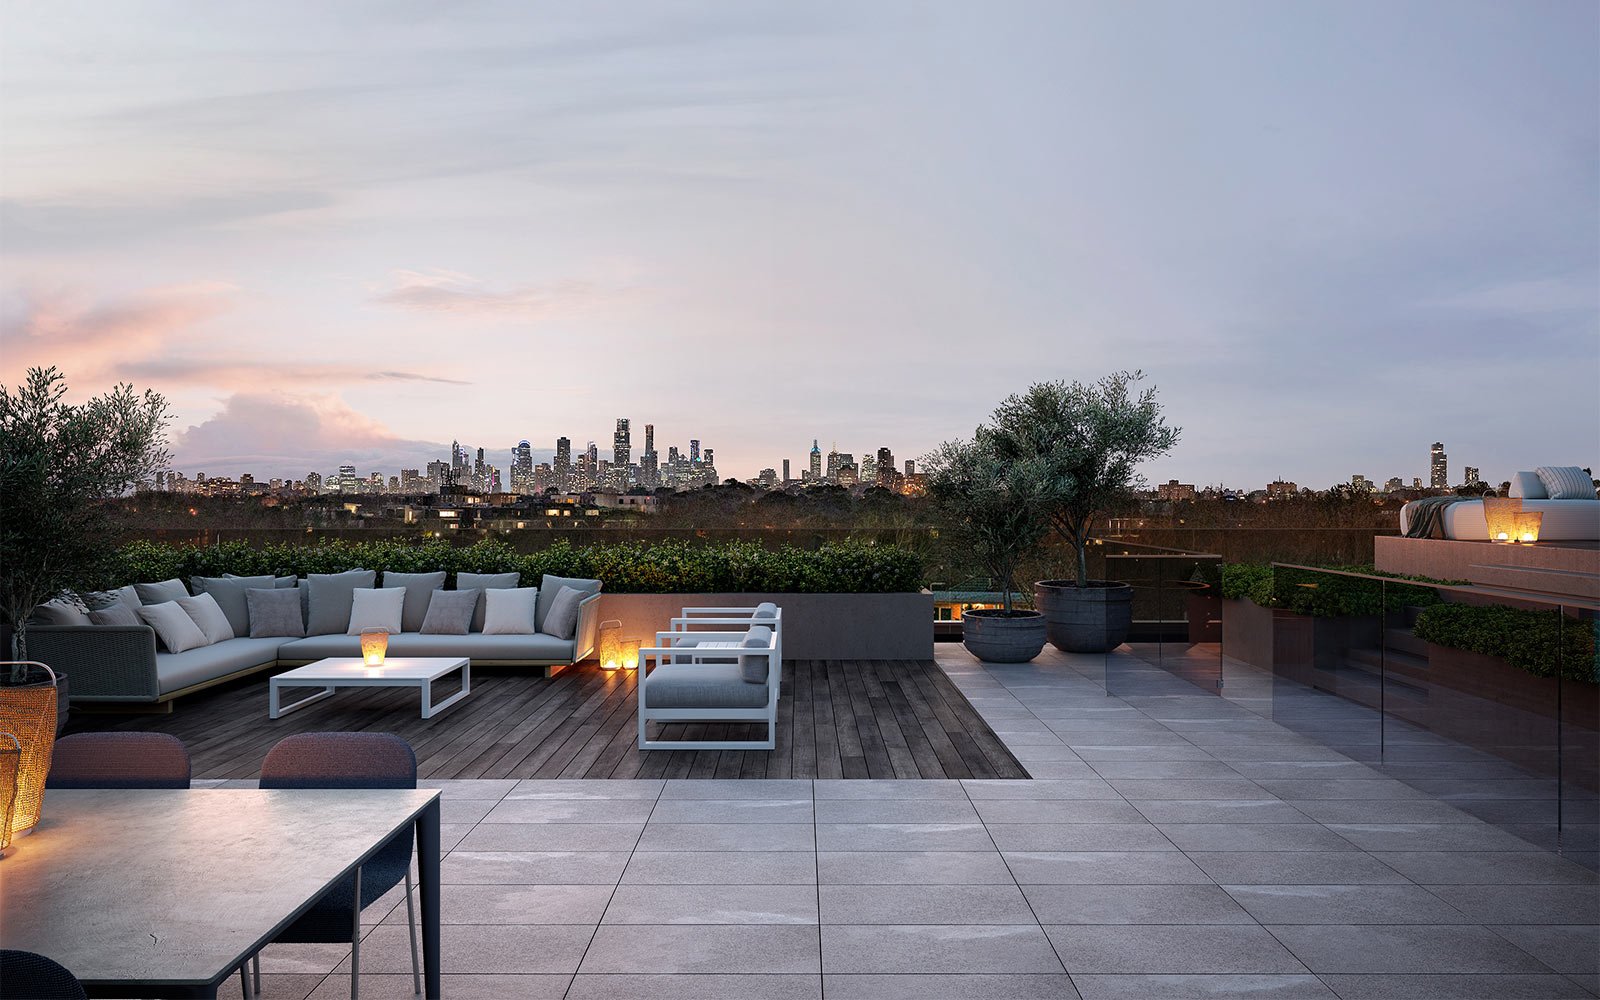 Penthouse Rooftop City View